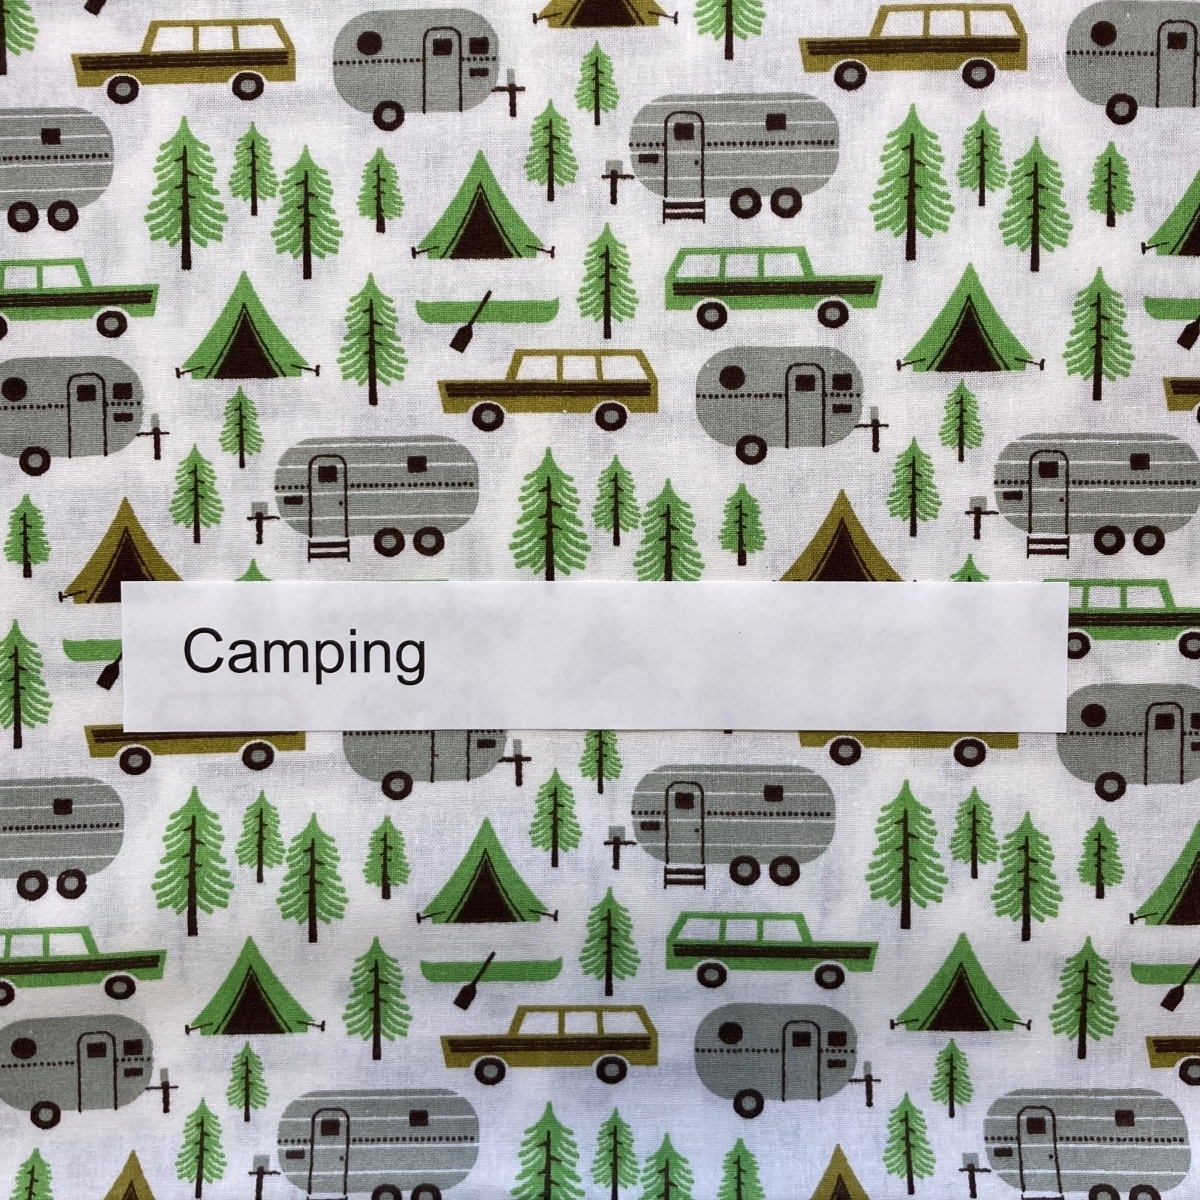 camping-special-interest